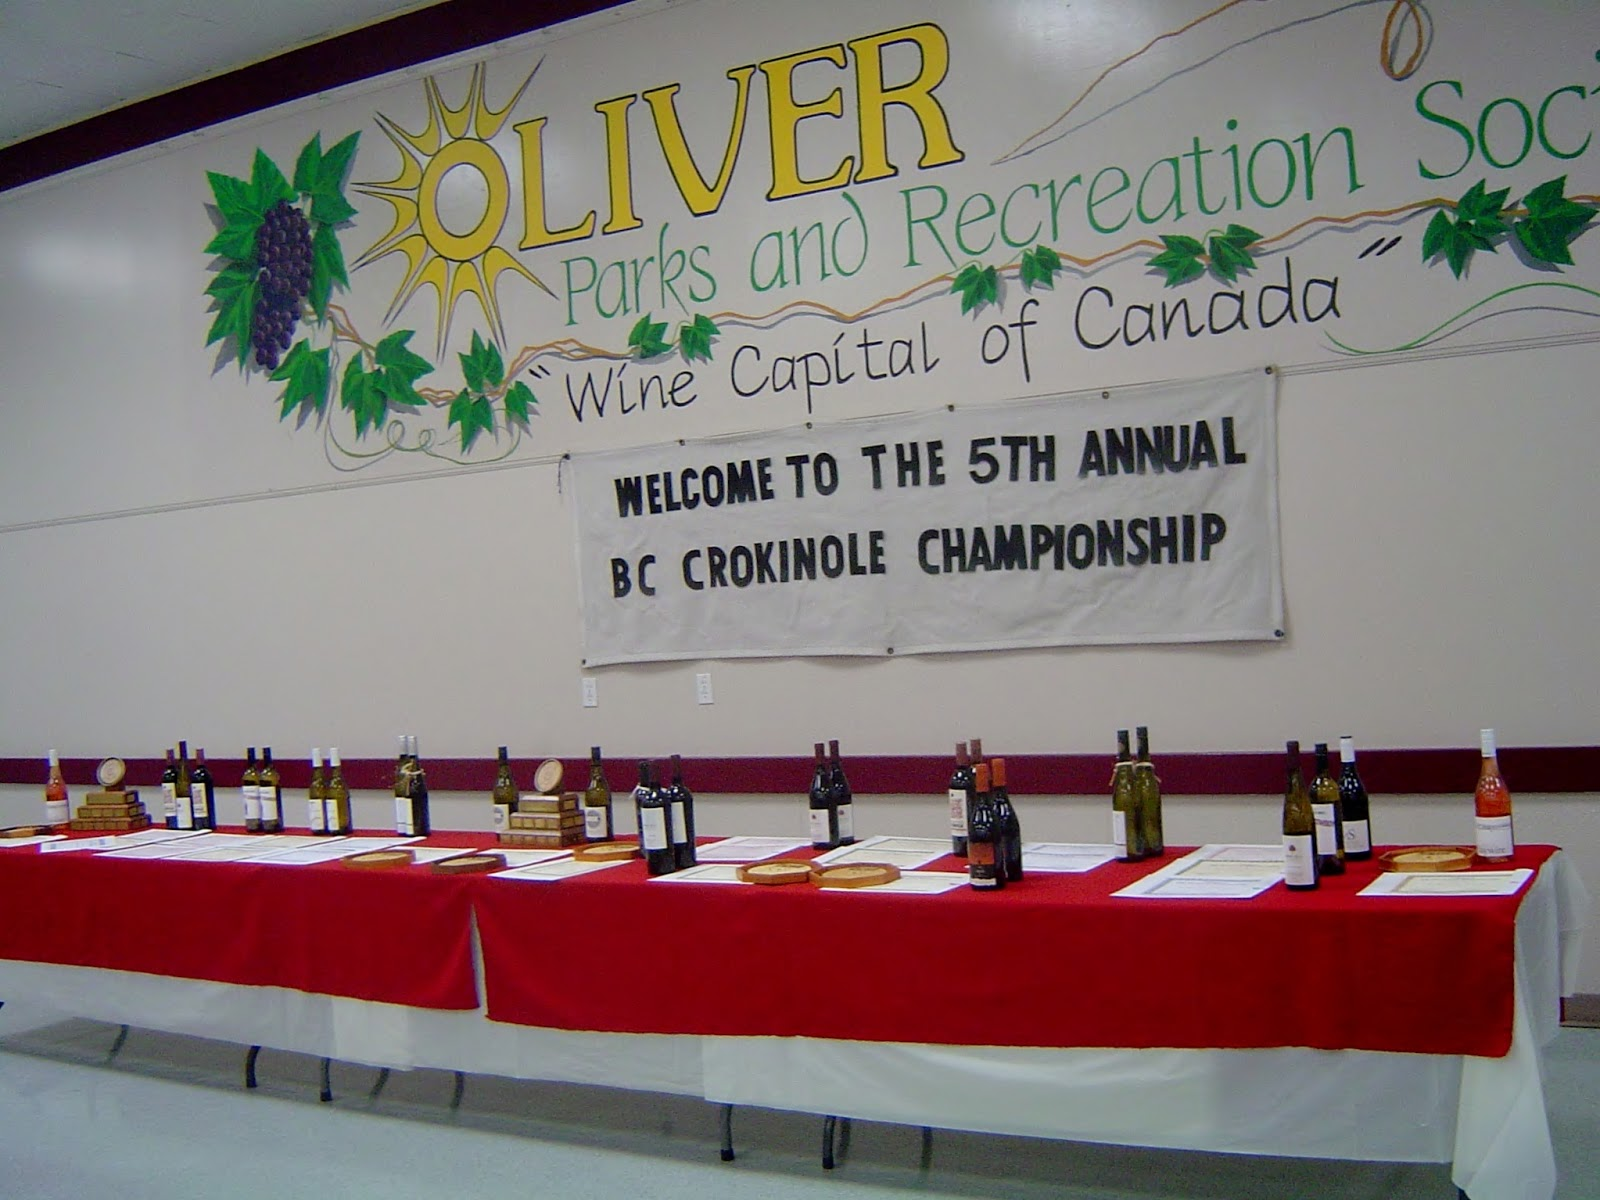 Welcome to the 5th Annual BC Crokinole Championship